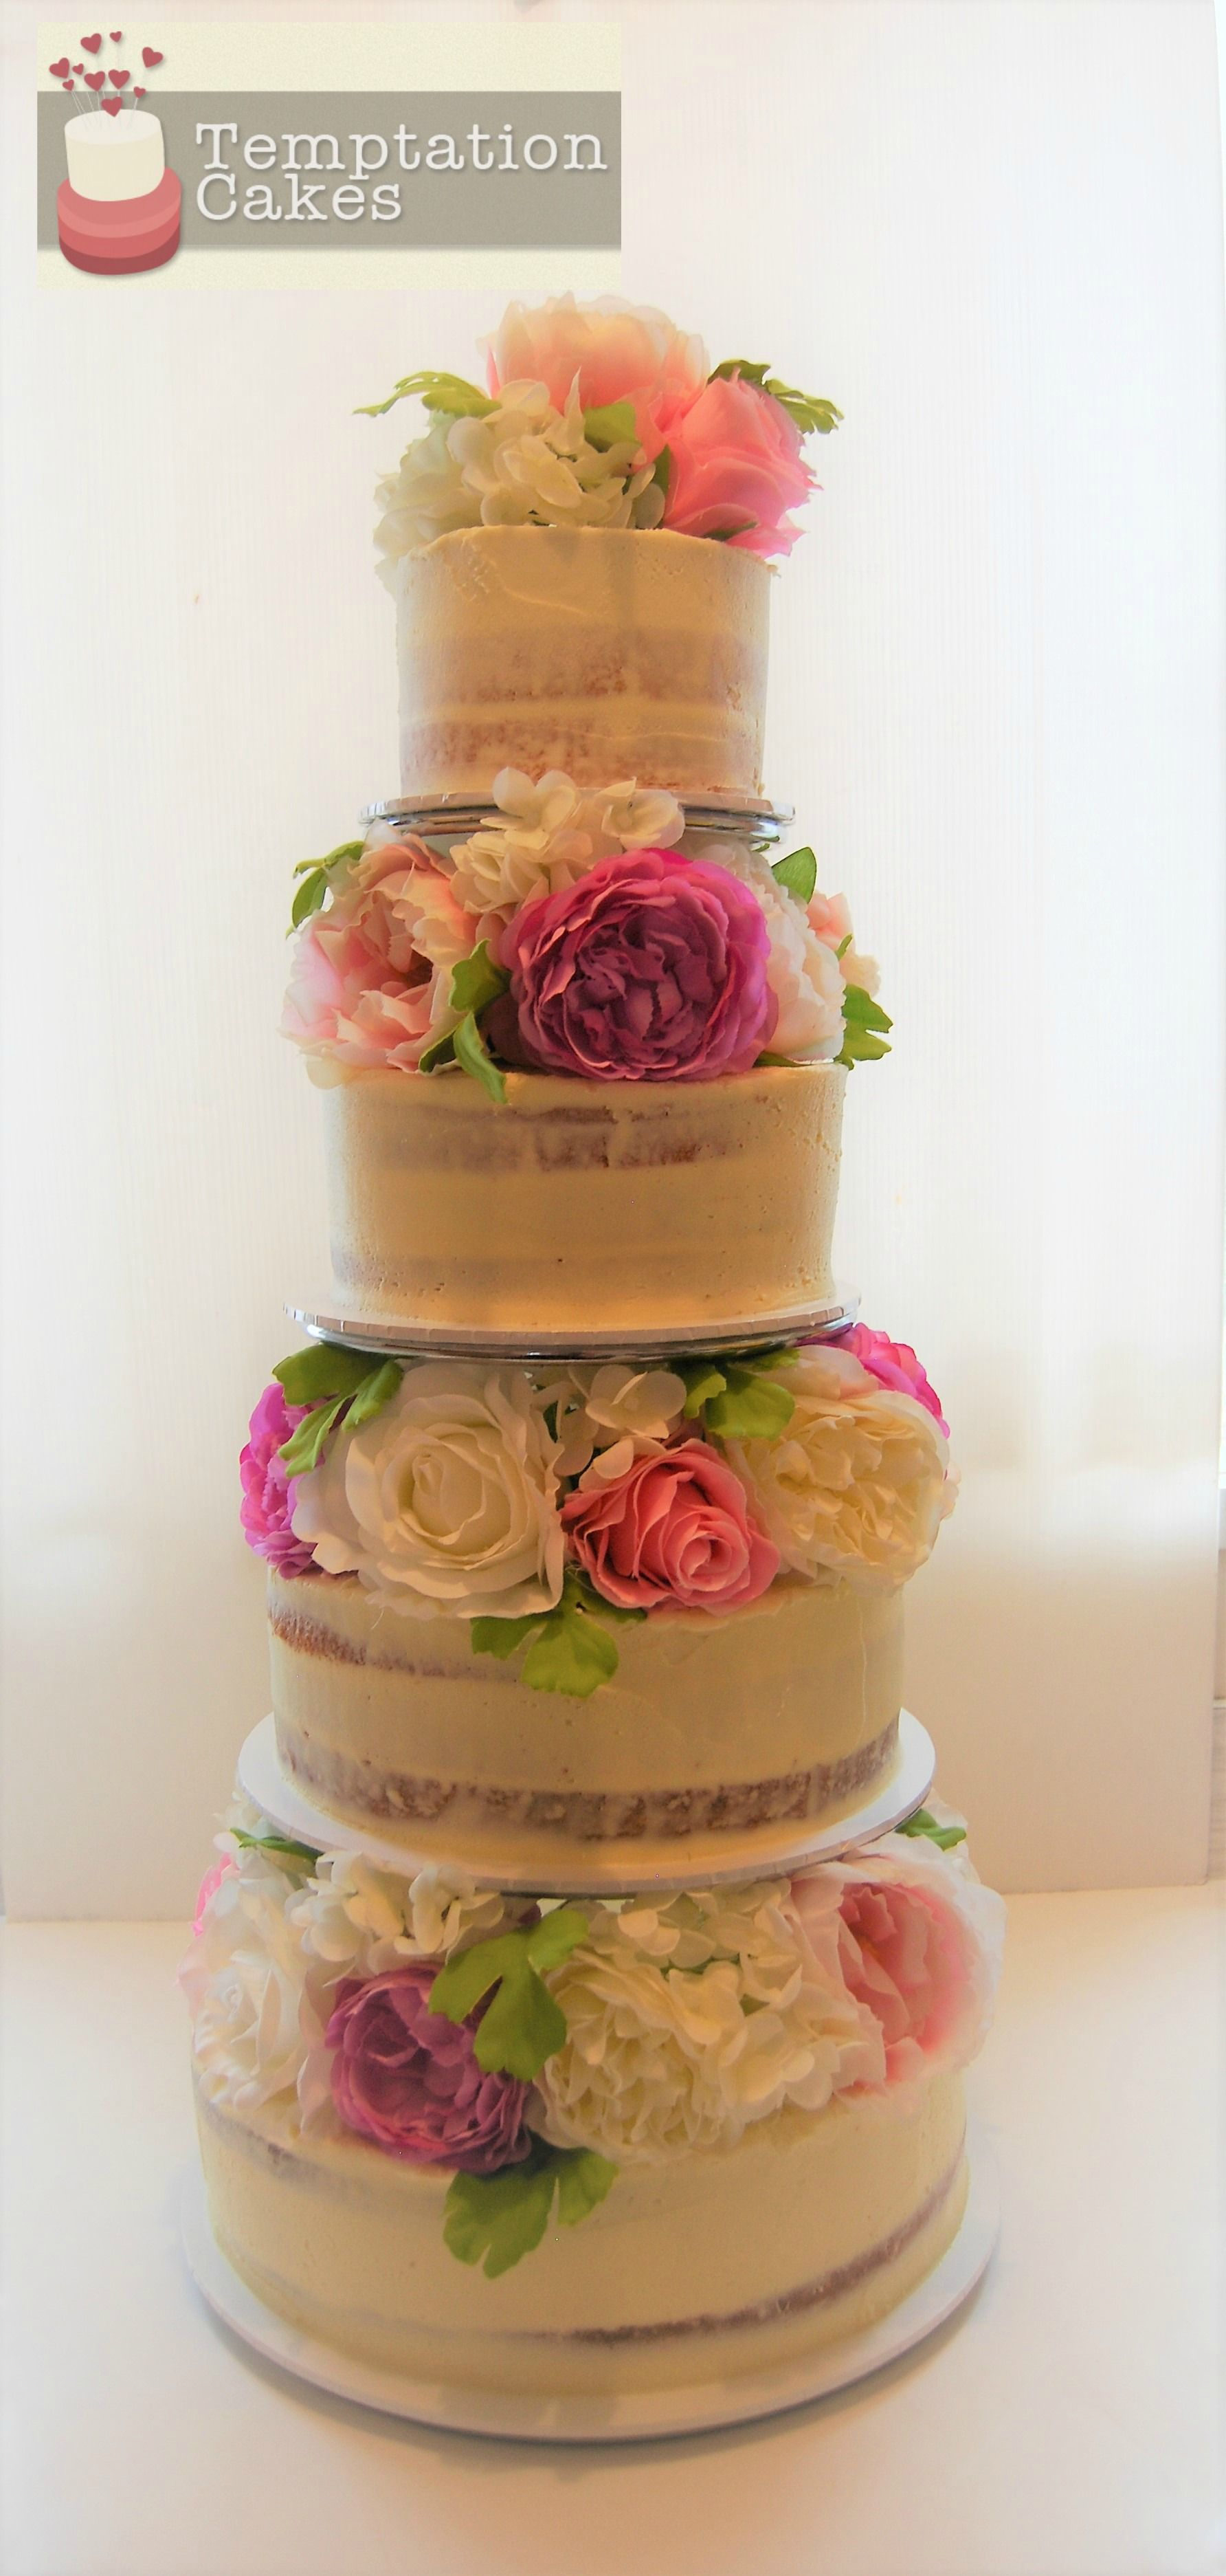 Semi Naked Cake Auckland 695 Includes Rental Of Our Silk Flowers